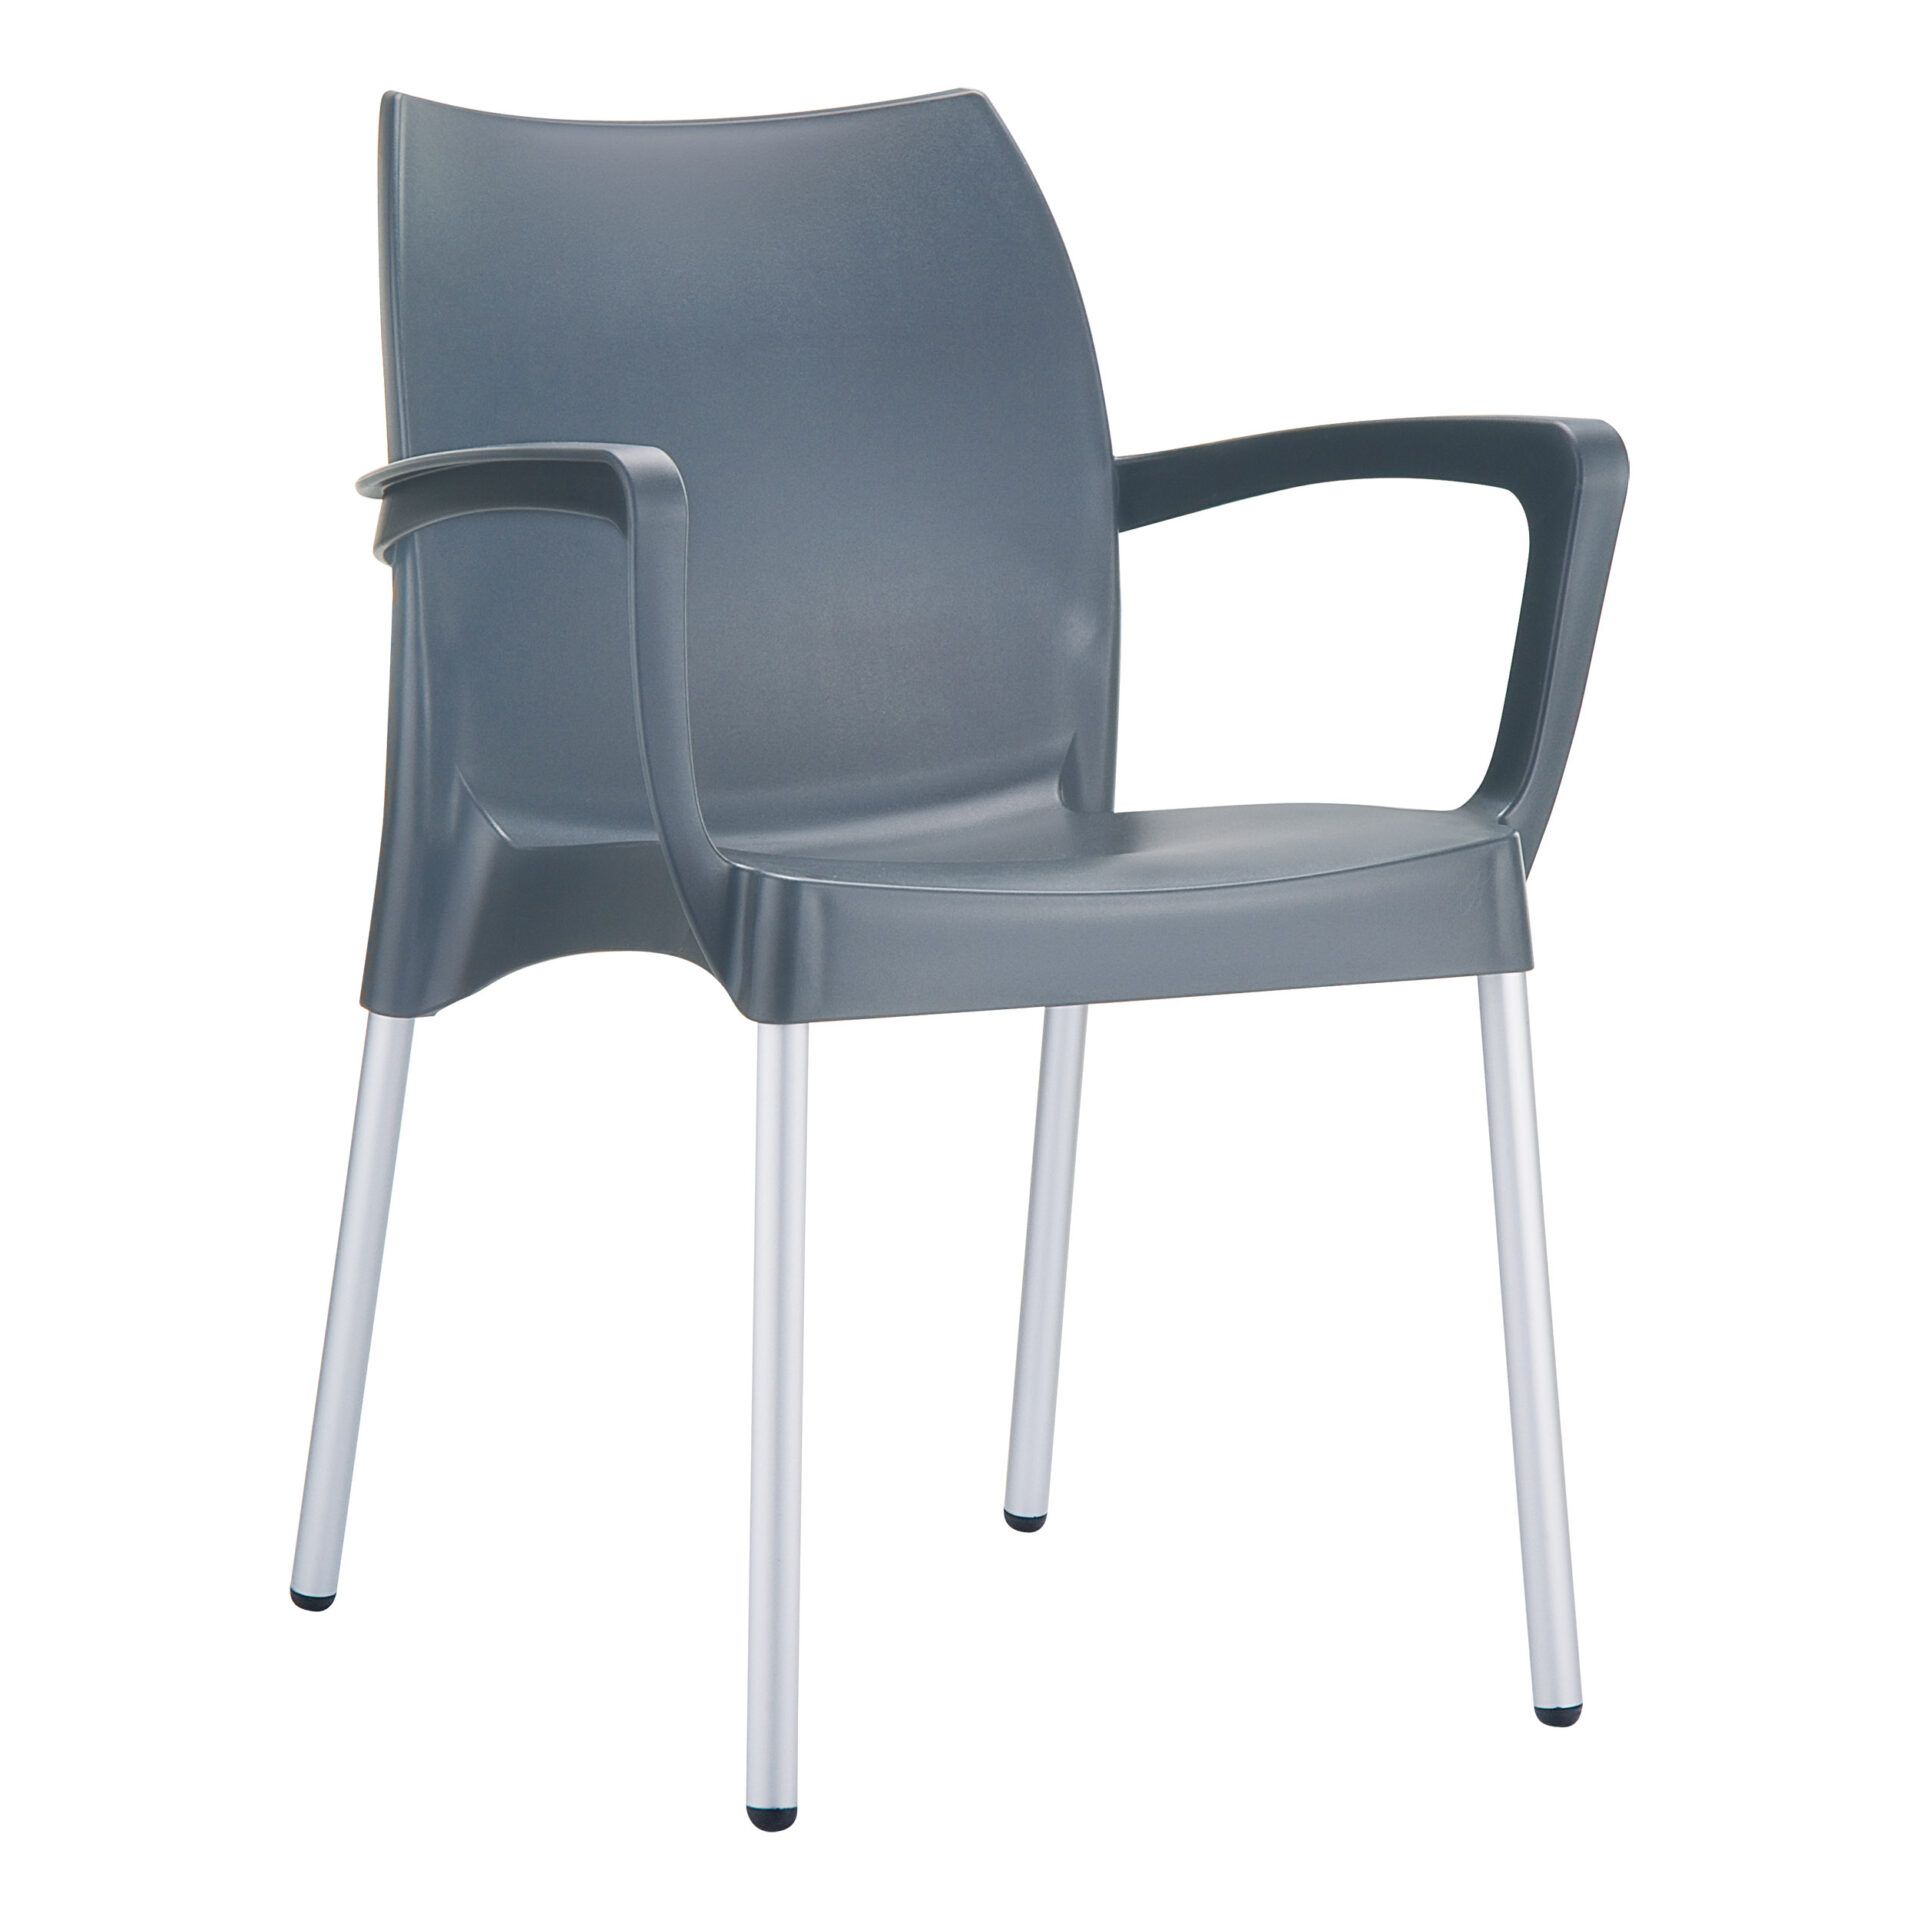 commercial polypropylene dolce chair darkgrey front side